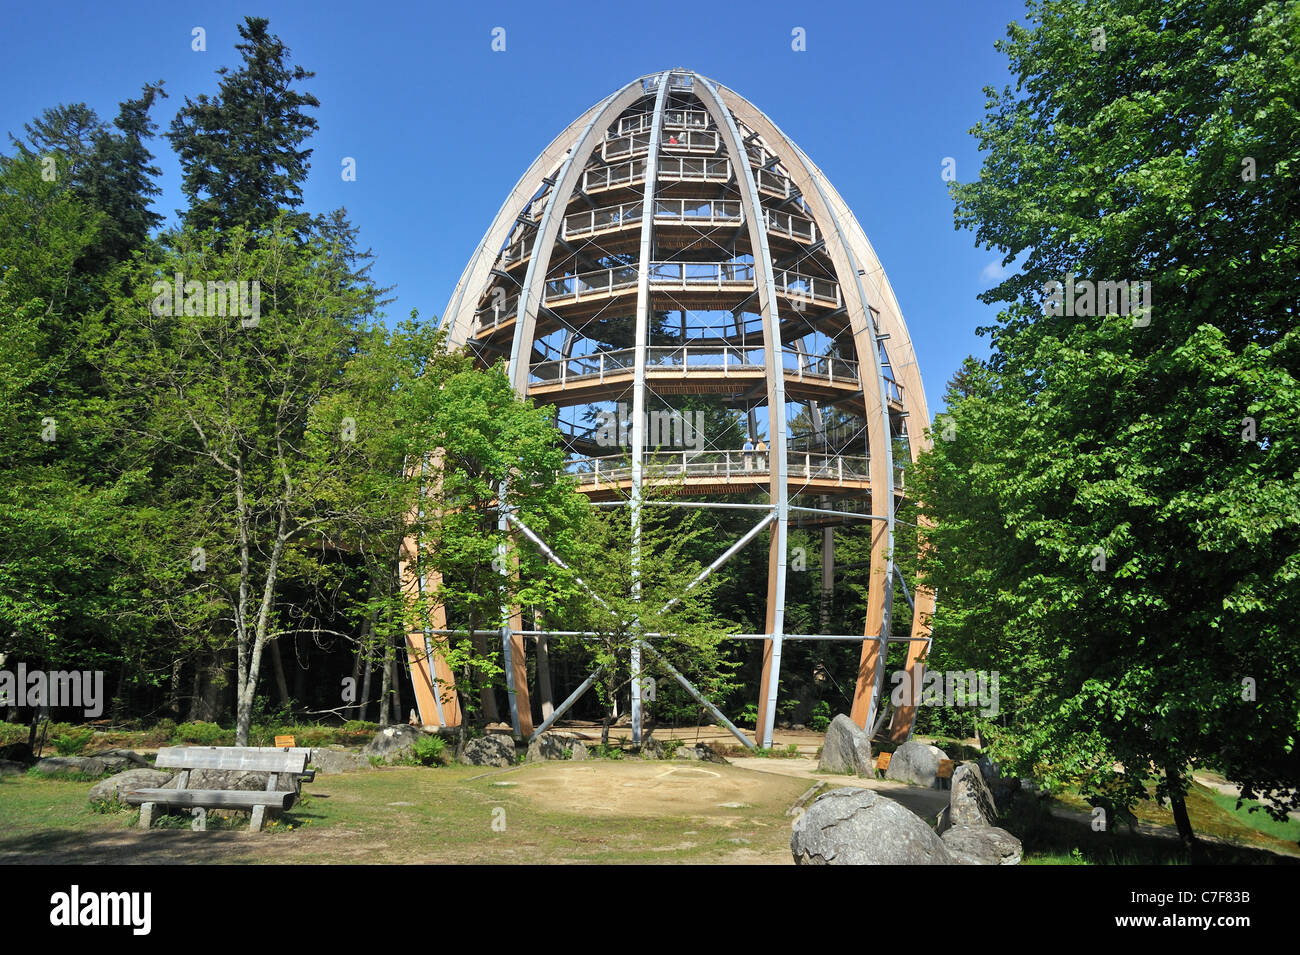 Baumwipfelpfad, a wooden tower construction of the world´s longest tree top walk in the Bavarian Forest National - Stock Image